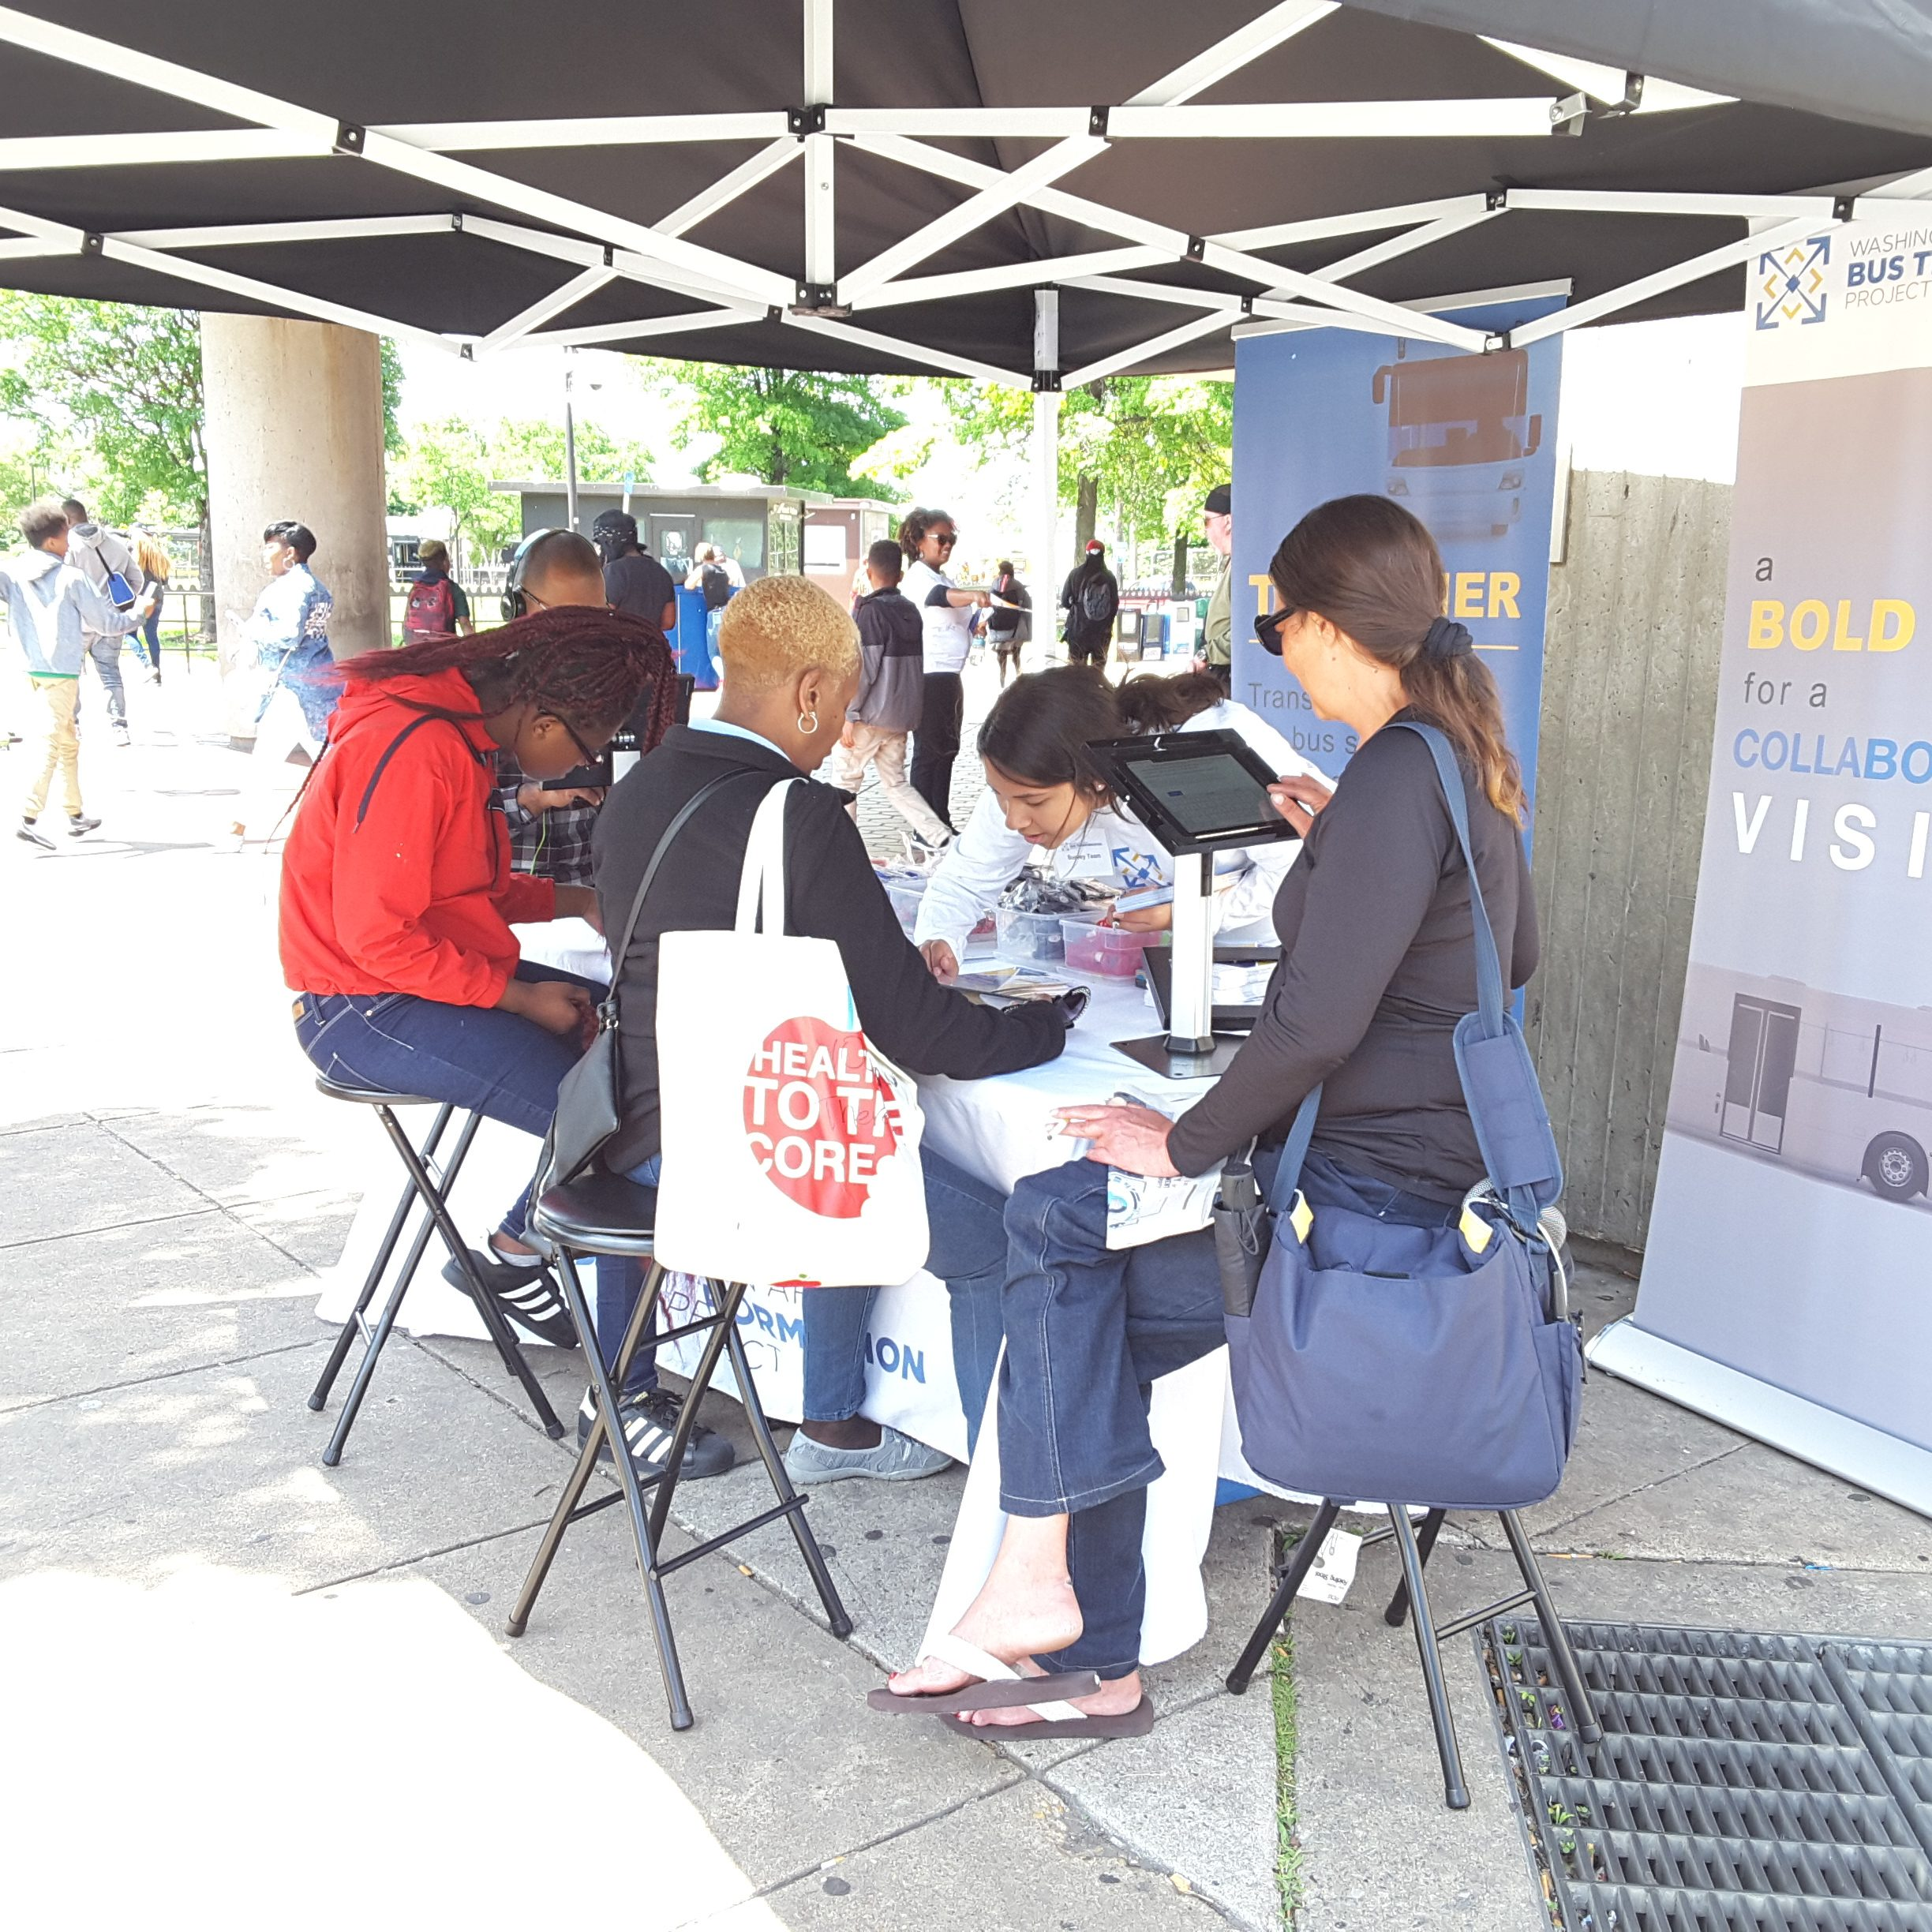 People gathered at the Anacostia Metro Station popup event booth